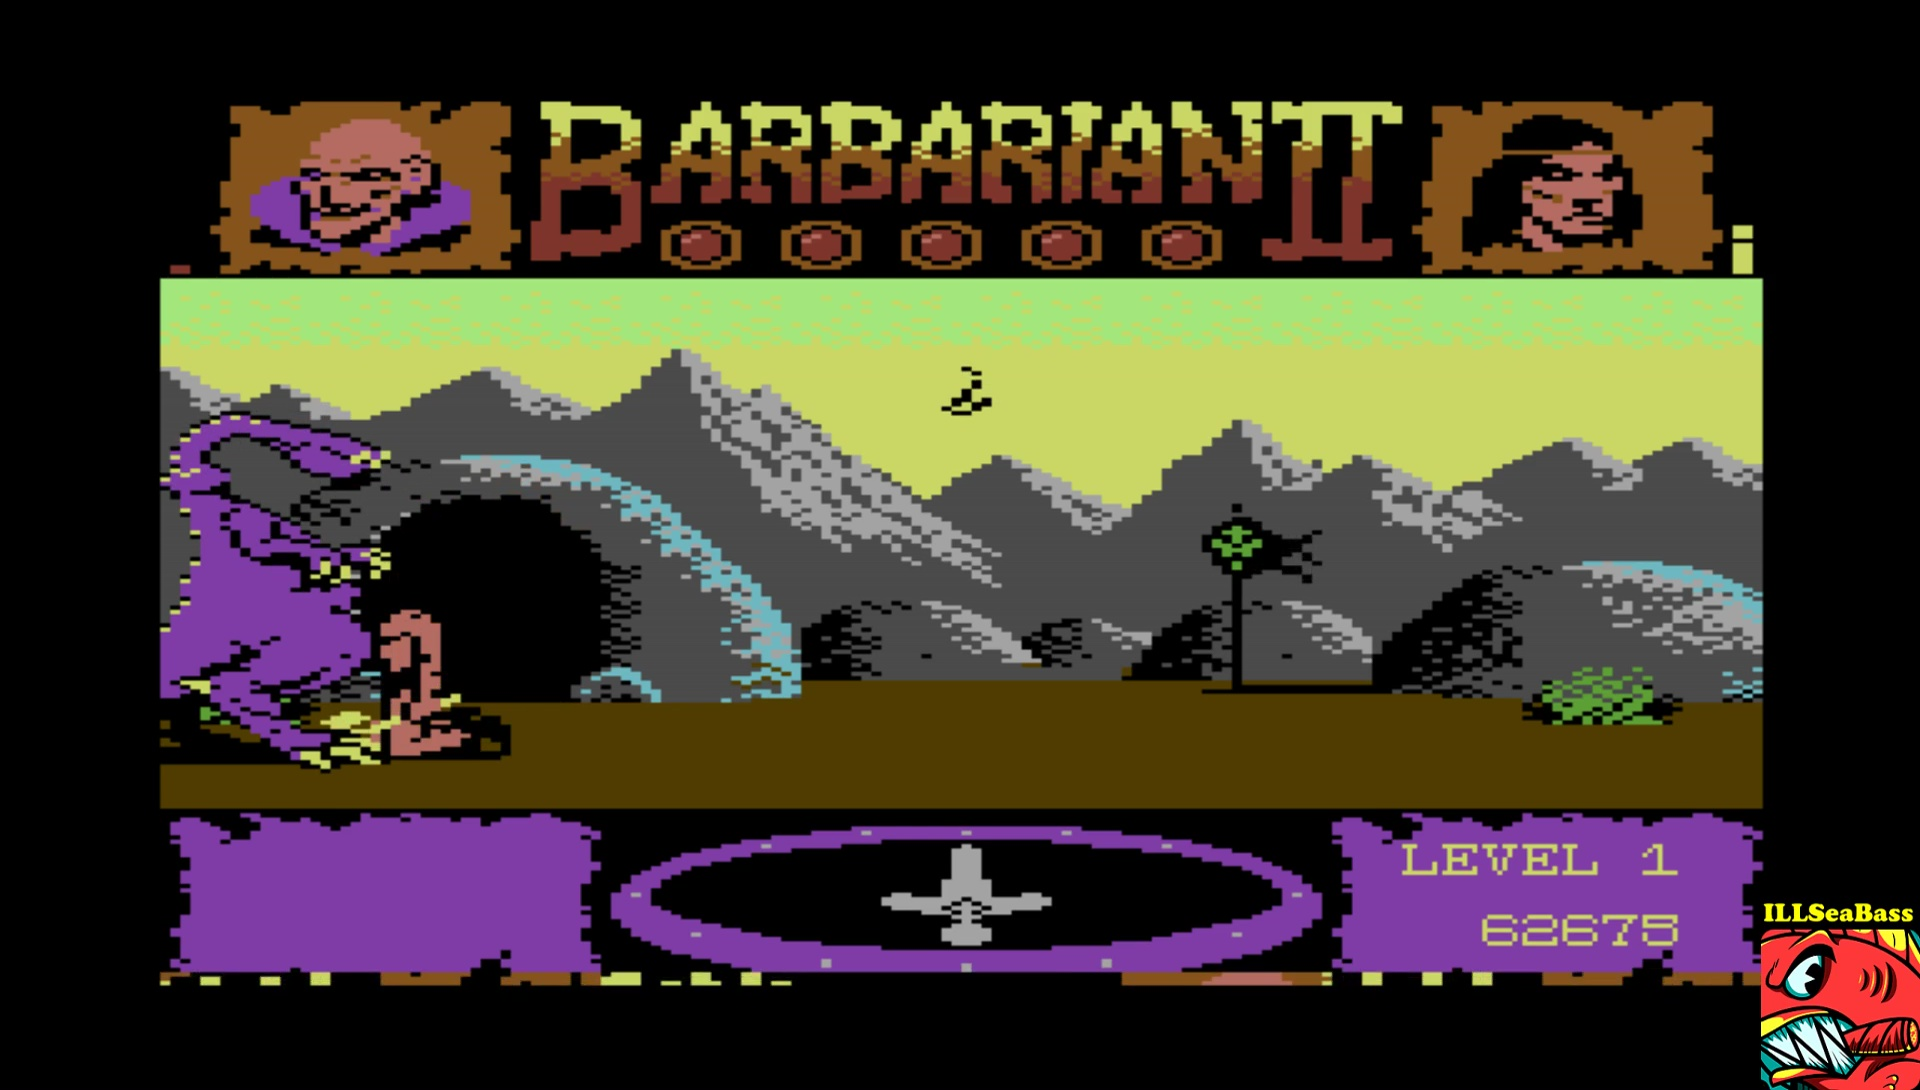 Barbarian II 62,675 points